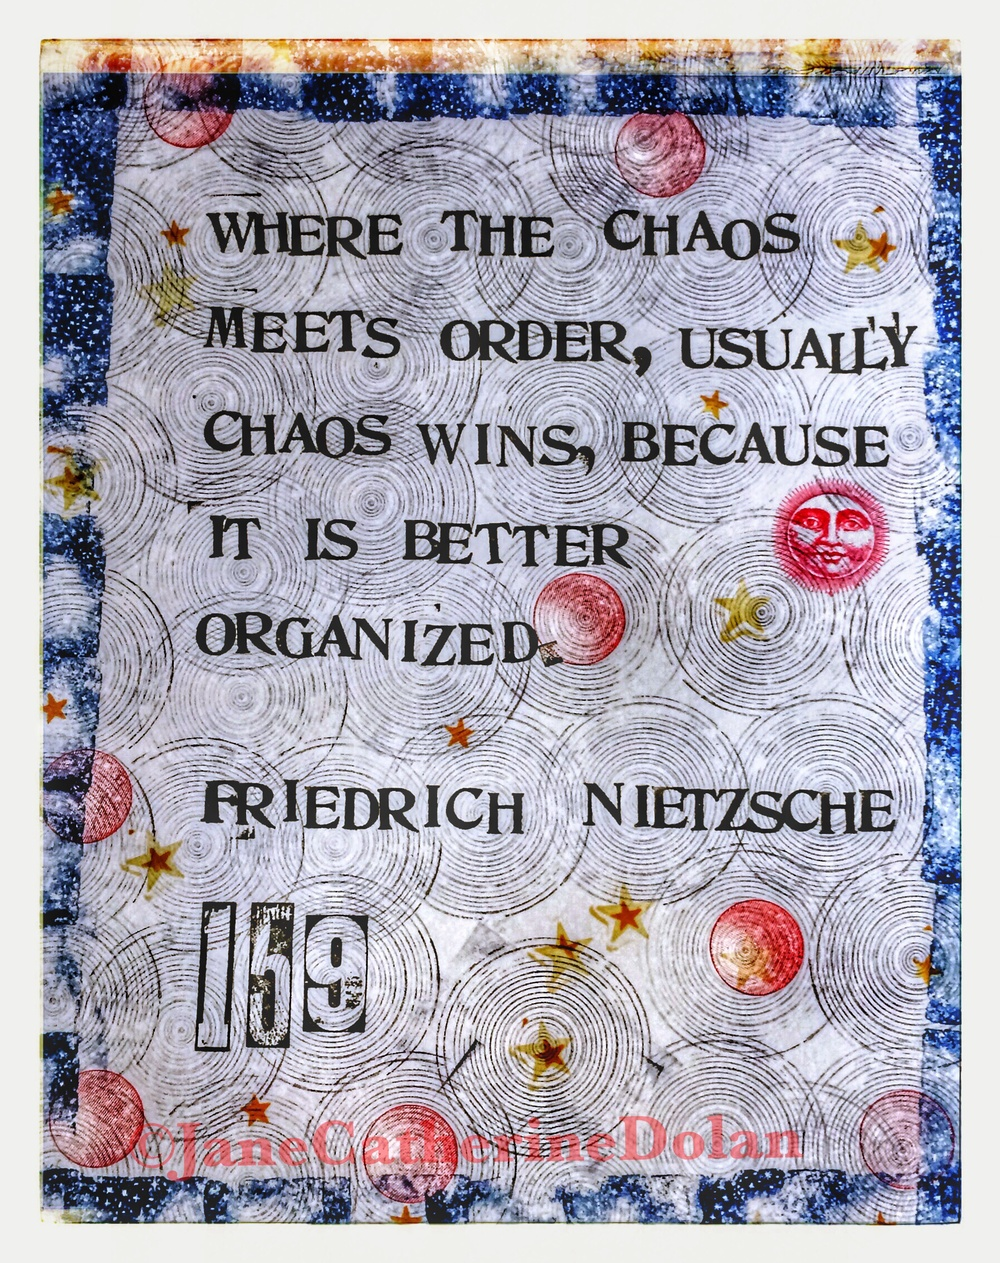 """Where the chaos meets order, usually chaos wins, because it is better organized."" -Friedrich Nietzsche"